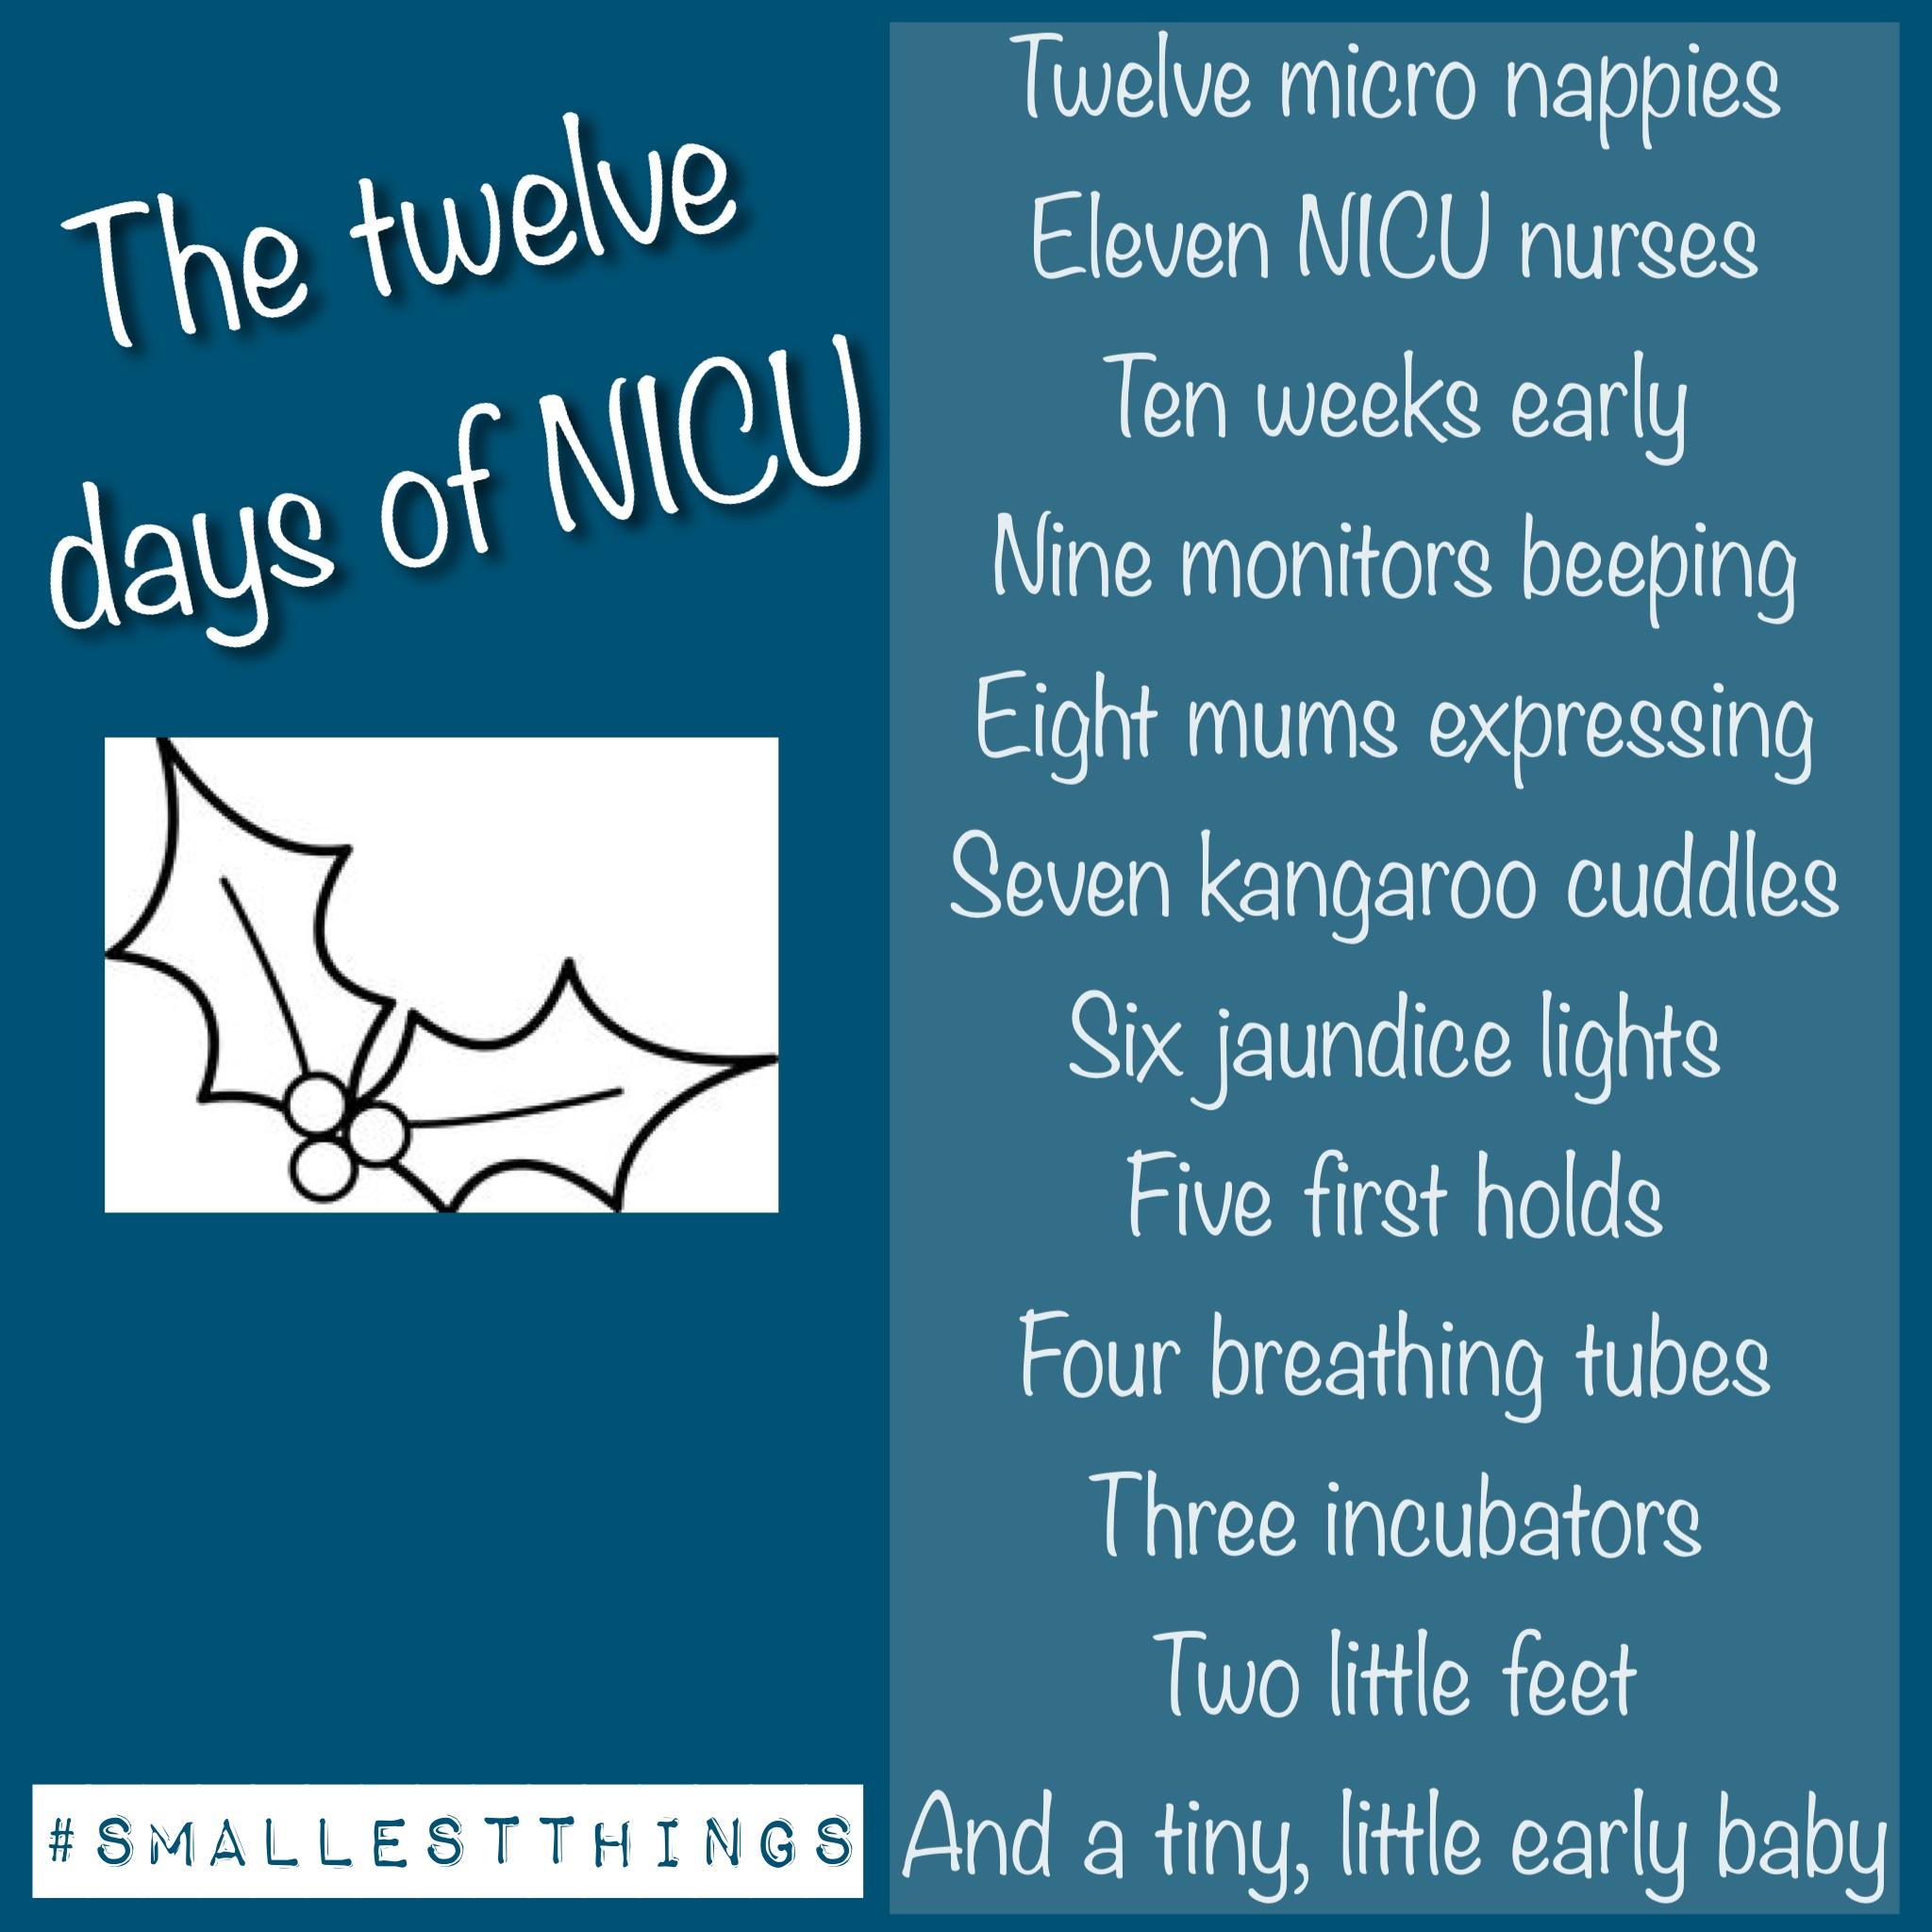 Twelve days of NICU! | The Smallest Things